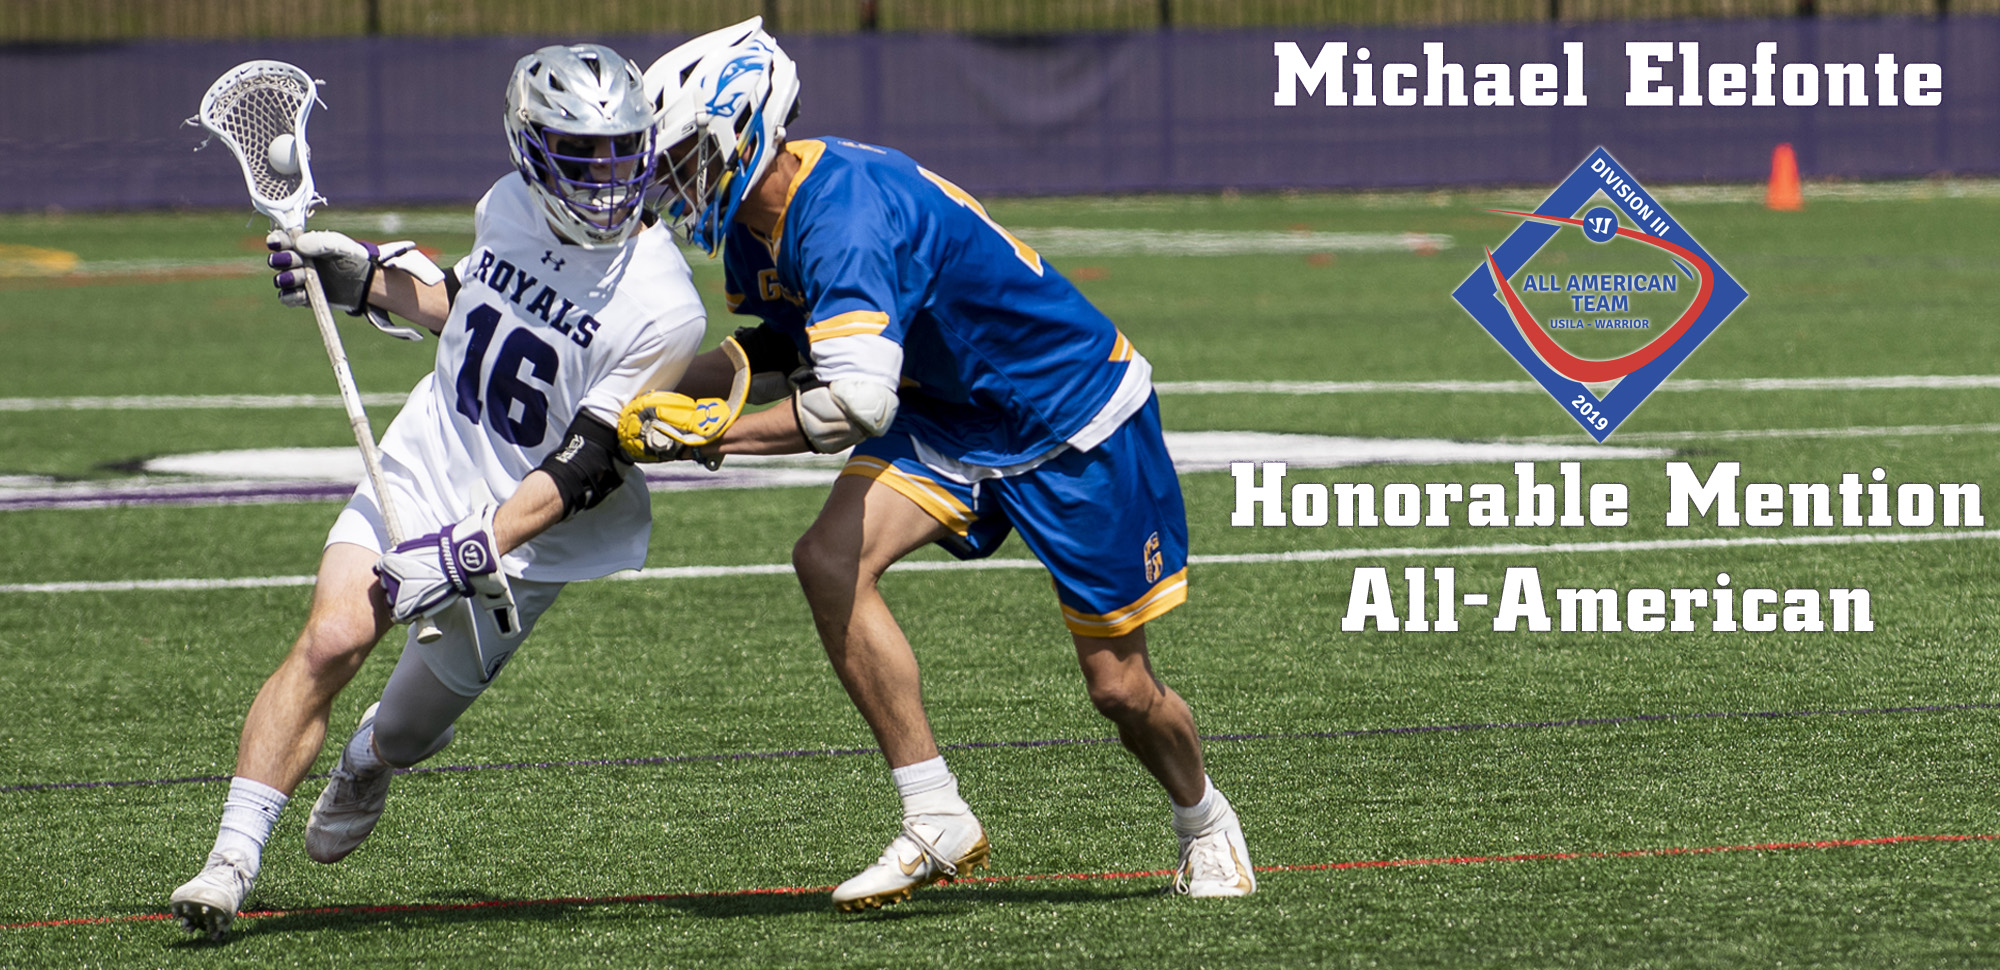 Junior Michael Elefonte was honored as a USILA Honorable Mention All-American selection on Thursday.